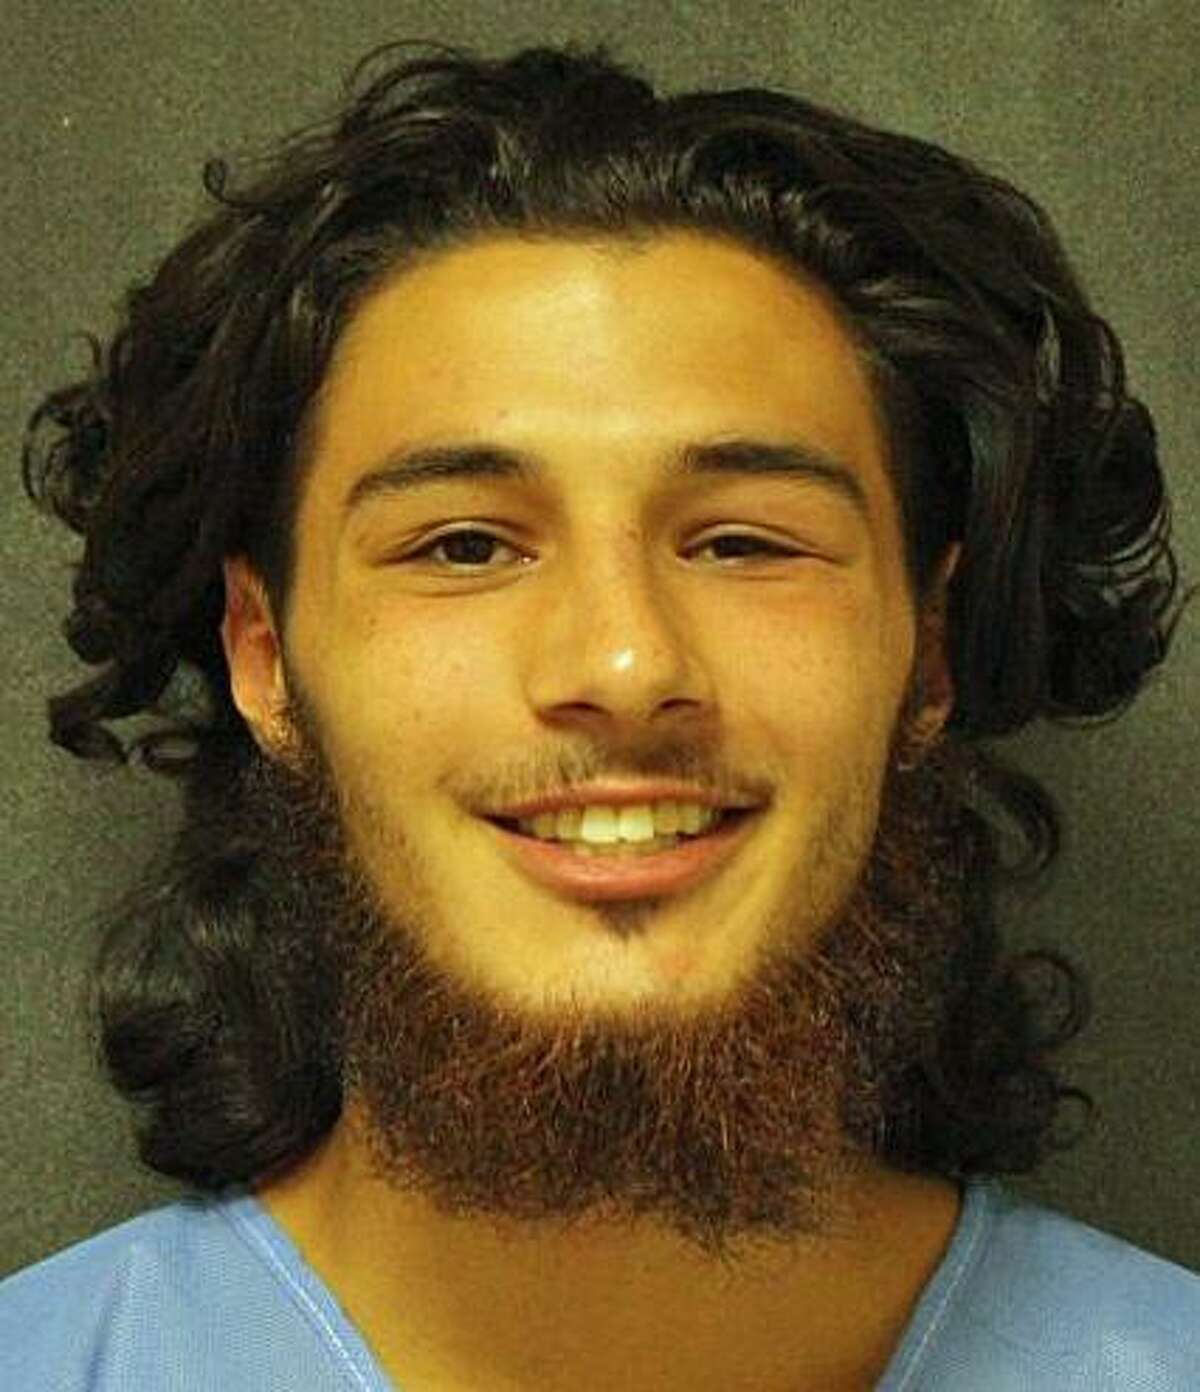 On Tuesday, July 24, 2018 police arrested Anthony Rodriguez-Horvath, 21, of Beacon Falls, after multiple crimes over a two-hour period.